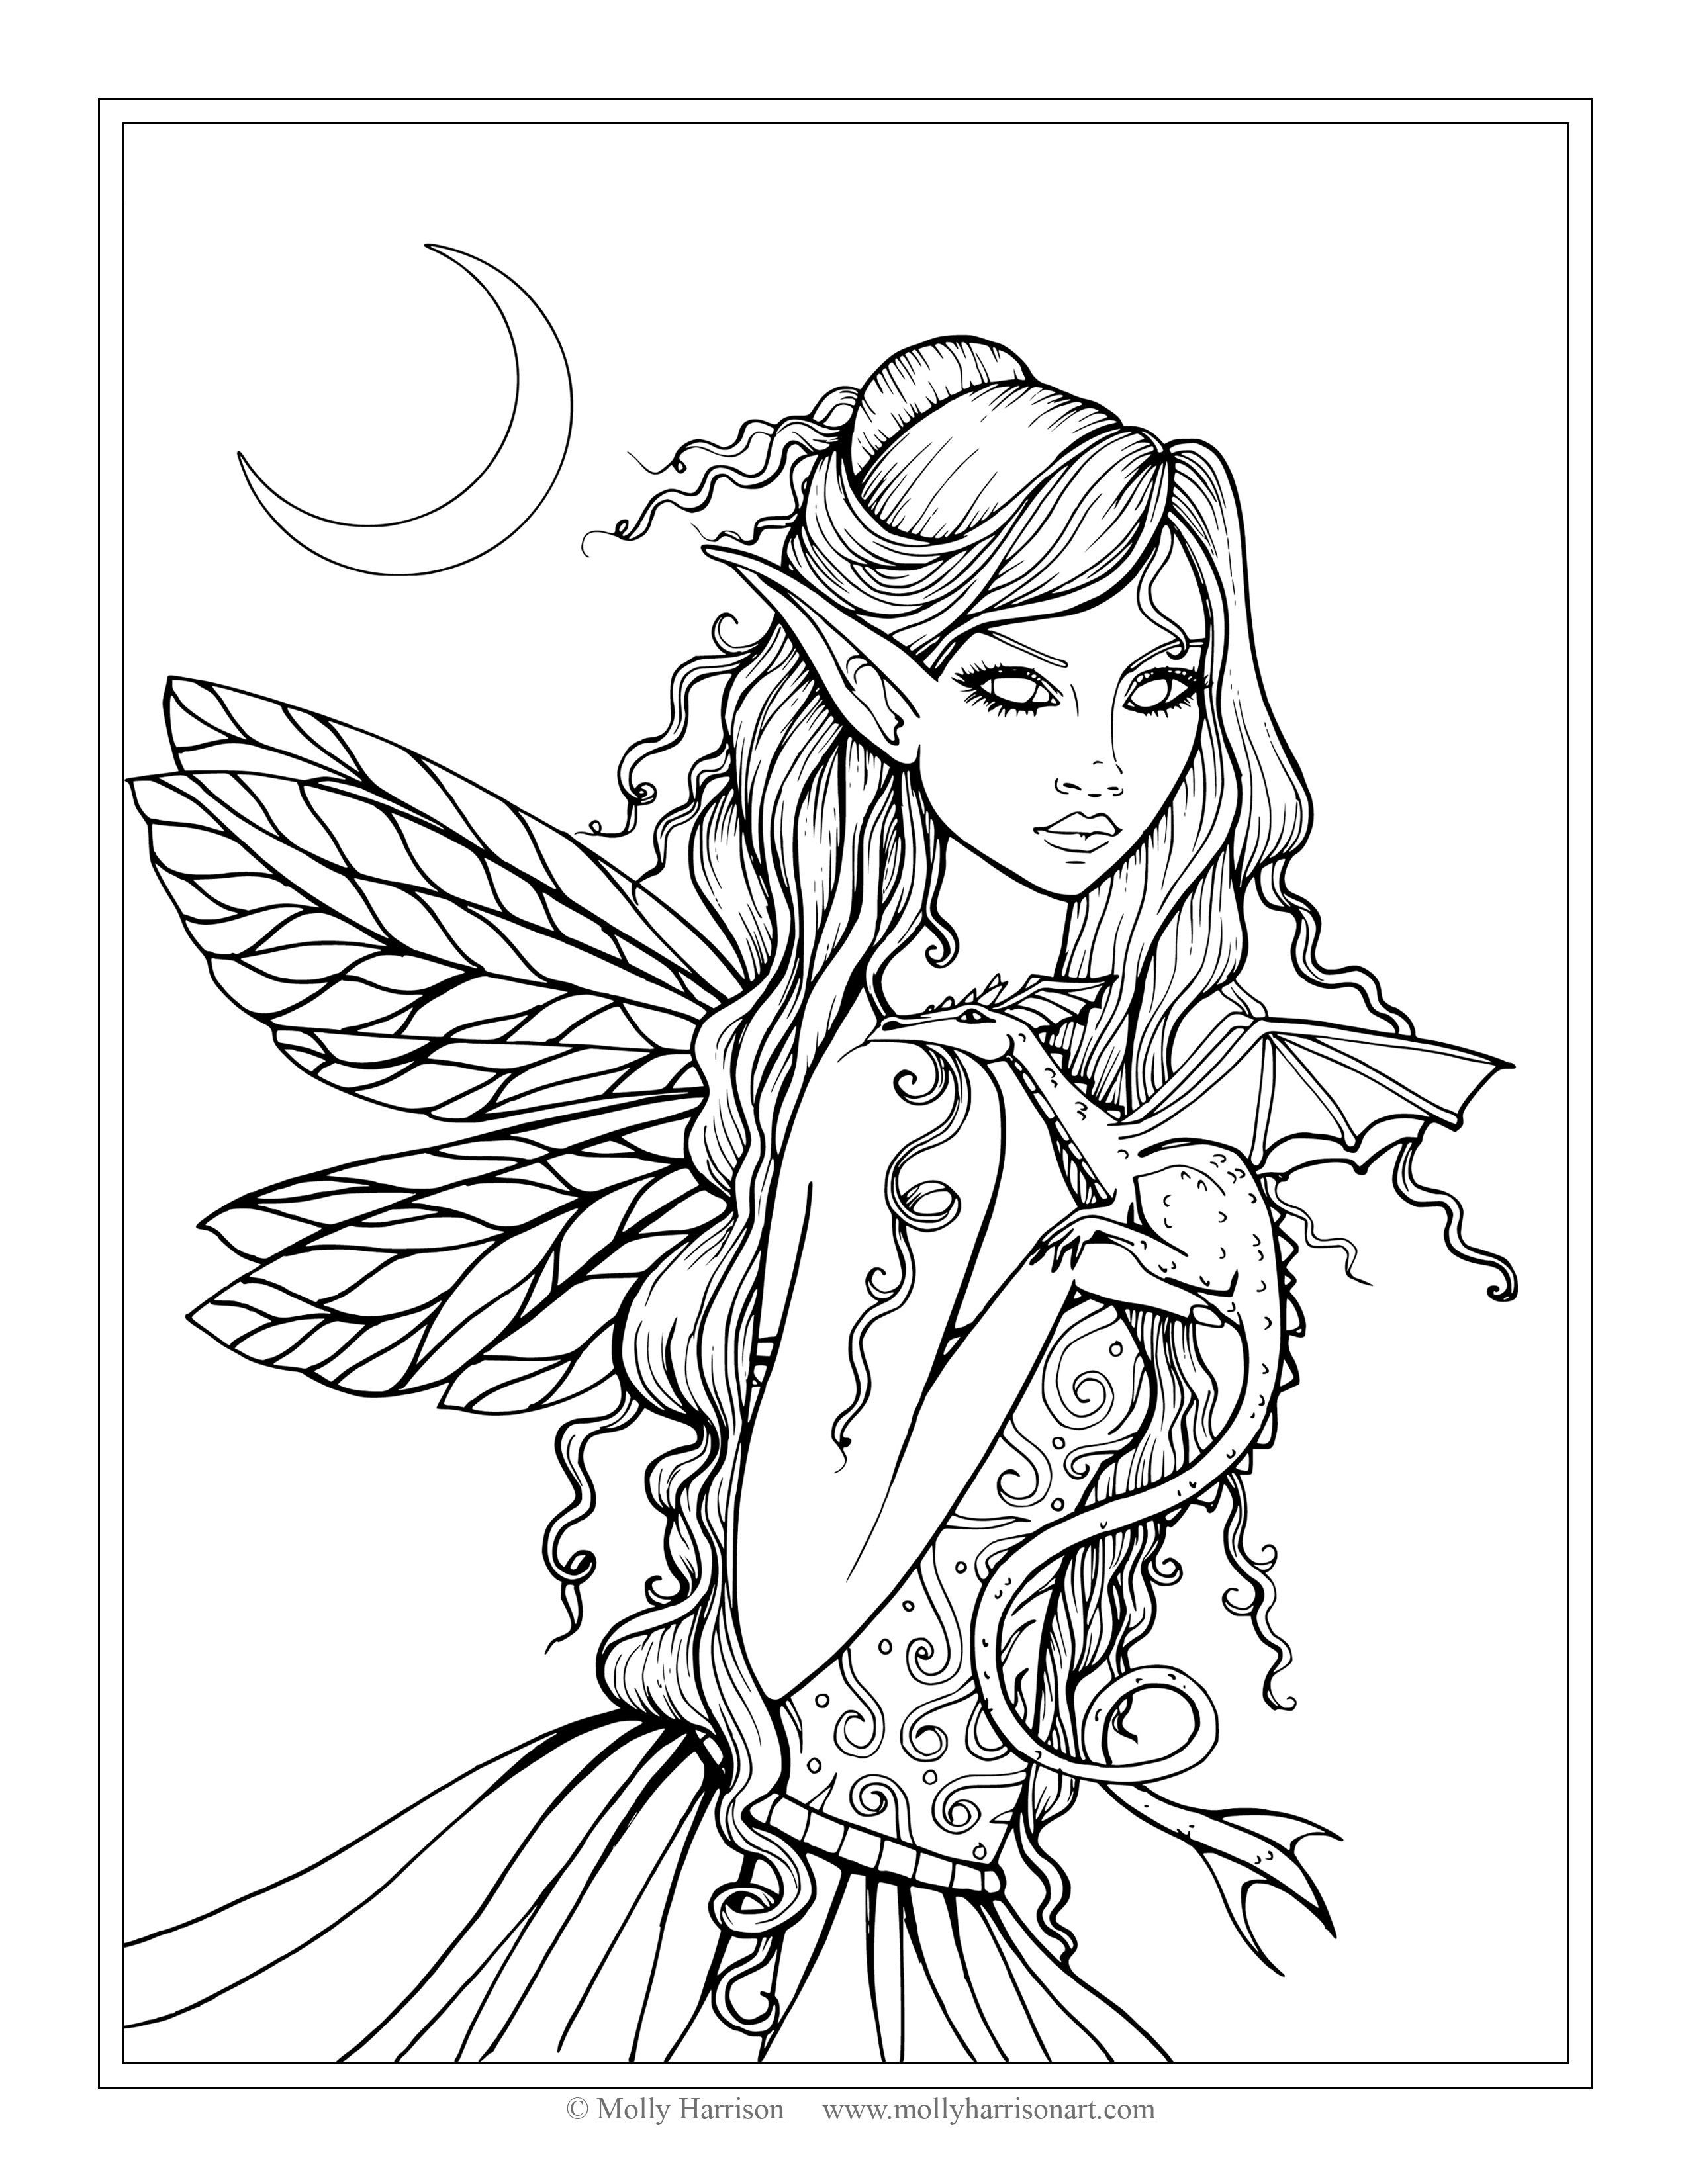 Best ideas about Coloring Pages For Girls Fairies . Save or Pin Free Fairy and Dragon Coloring Page by Molly Harrison Now.